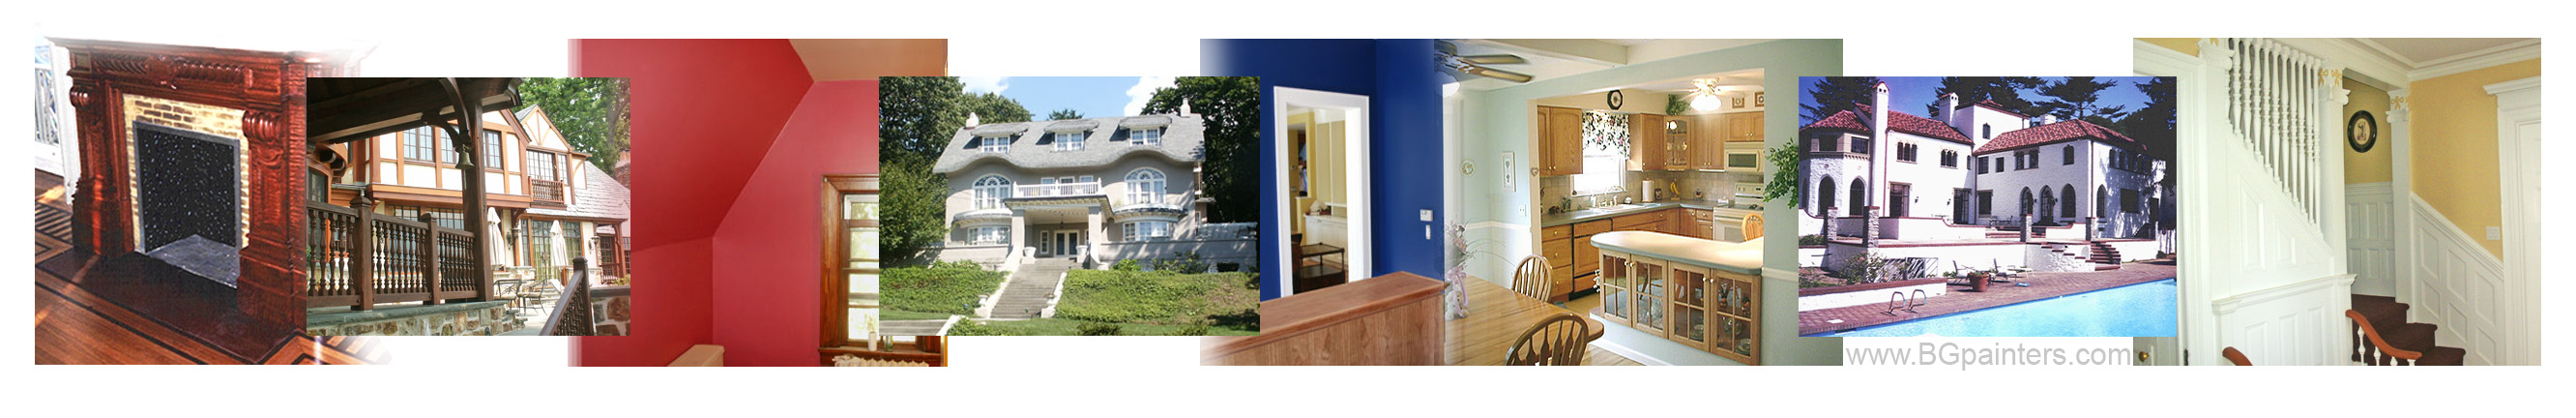 Painting contractors in westchester, Dobbs Ferry, NY